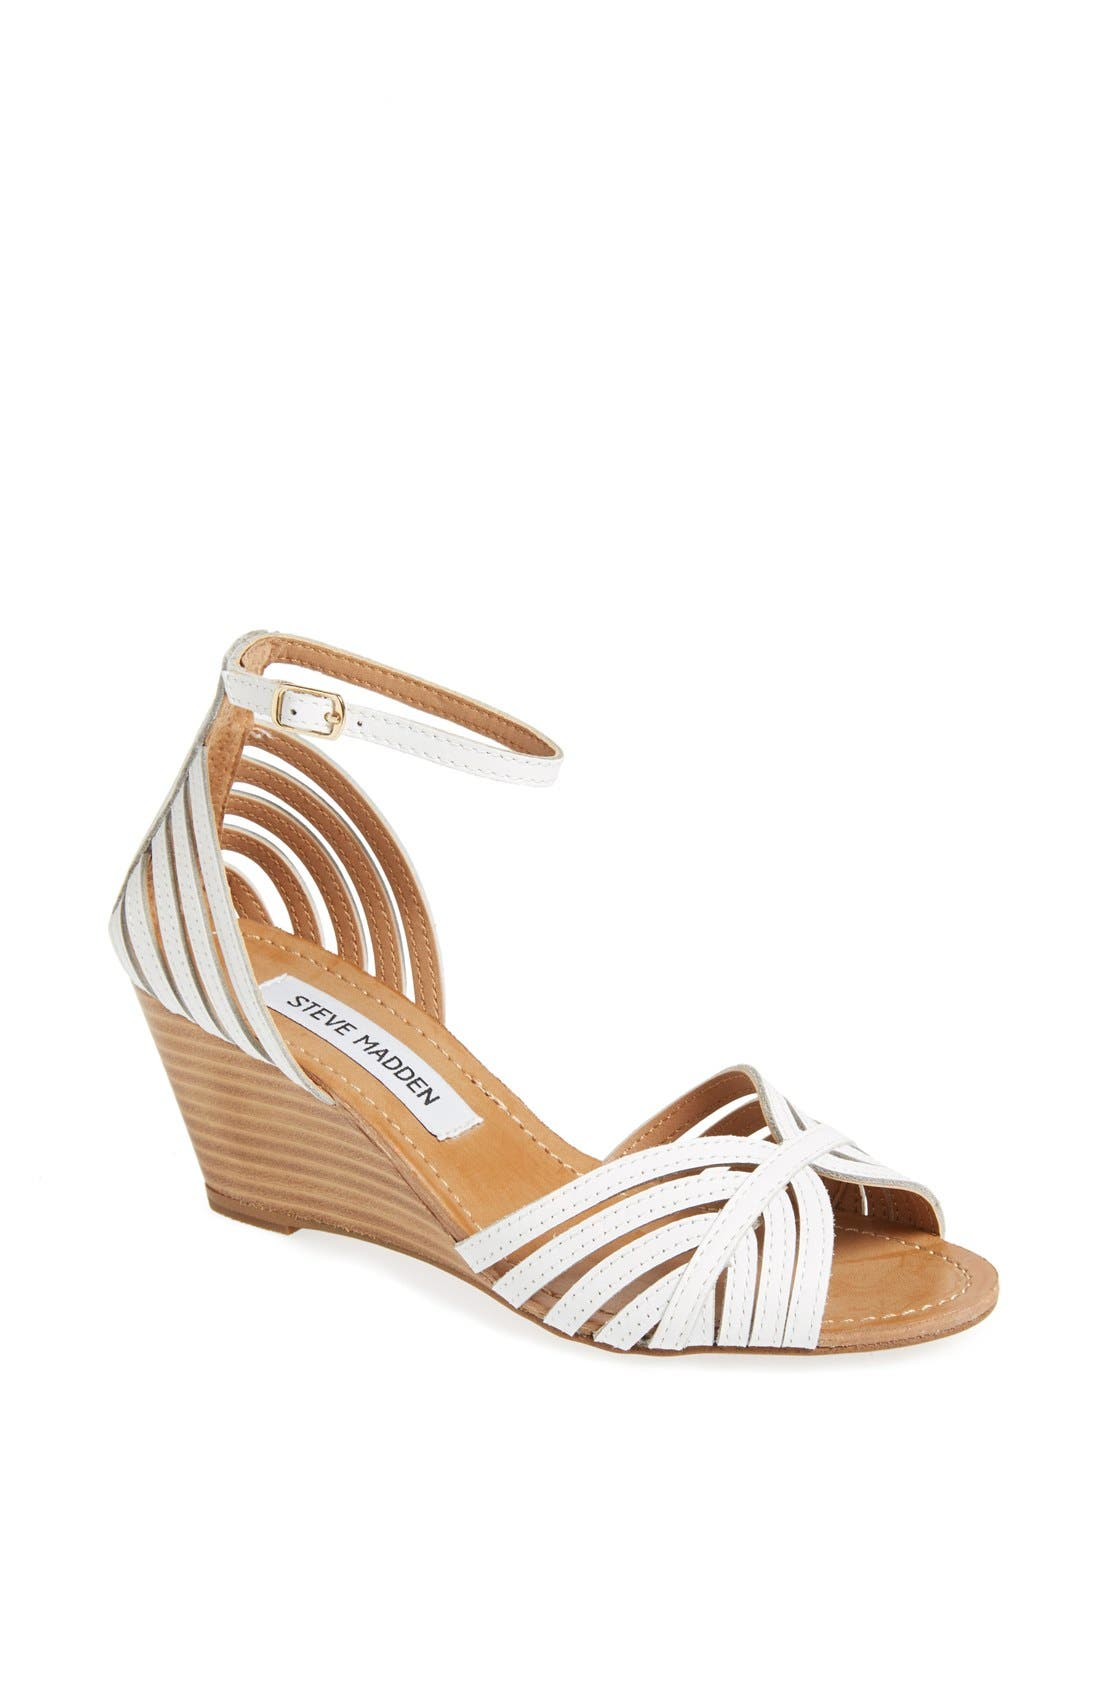 'Lexii' Sandal,                         Main,                         color,